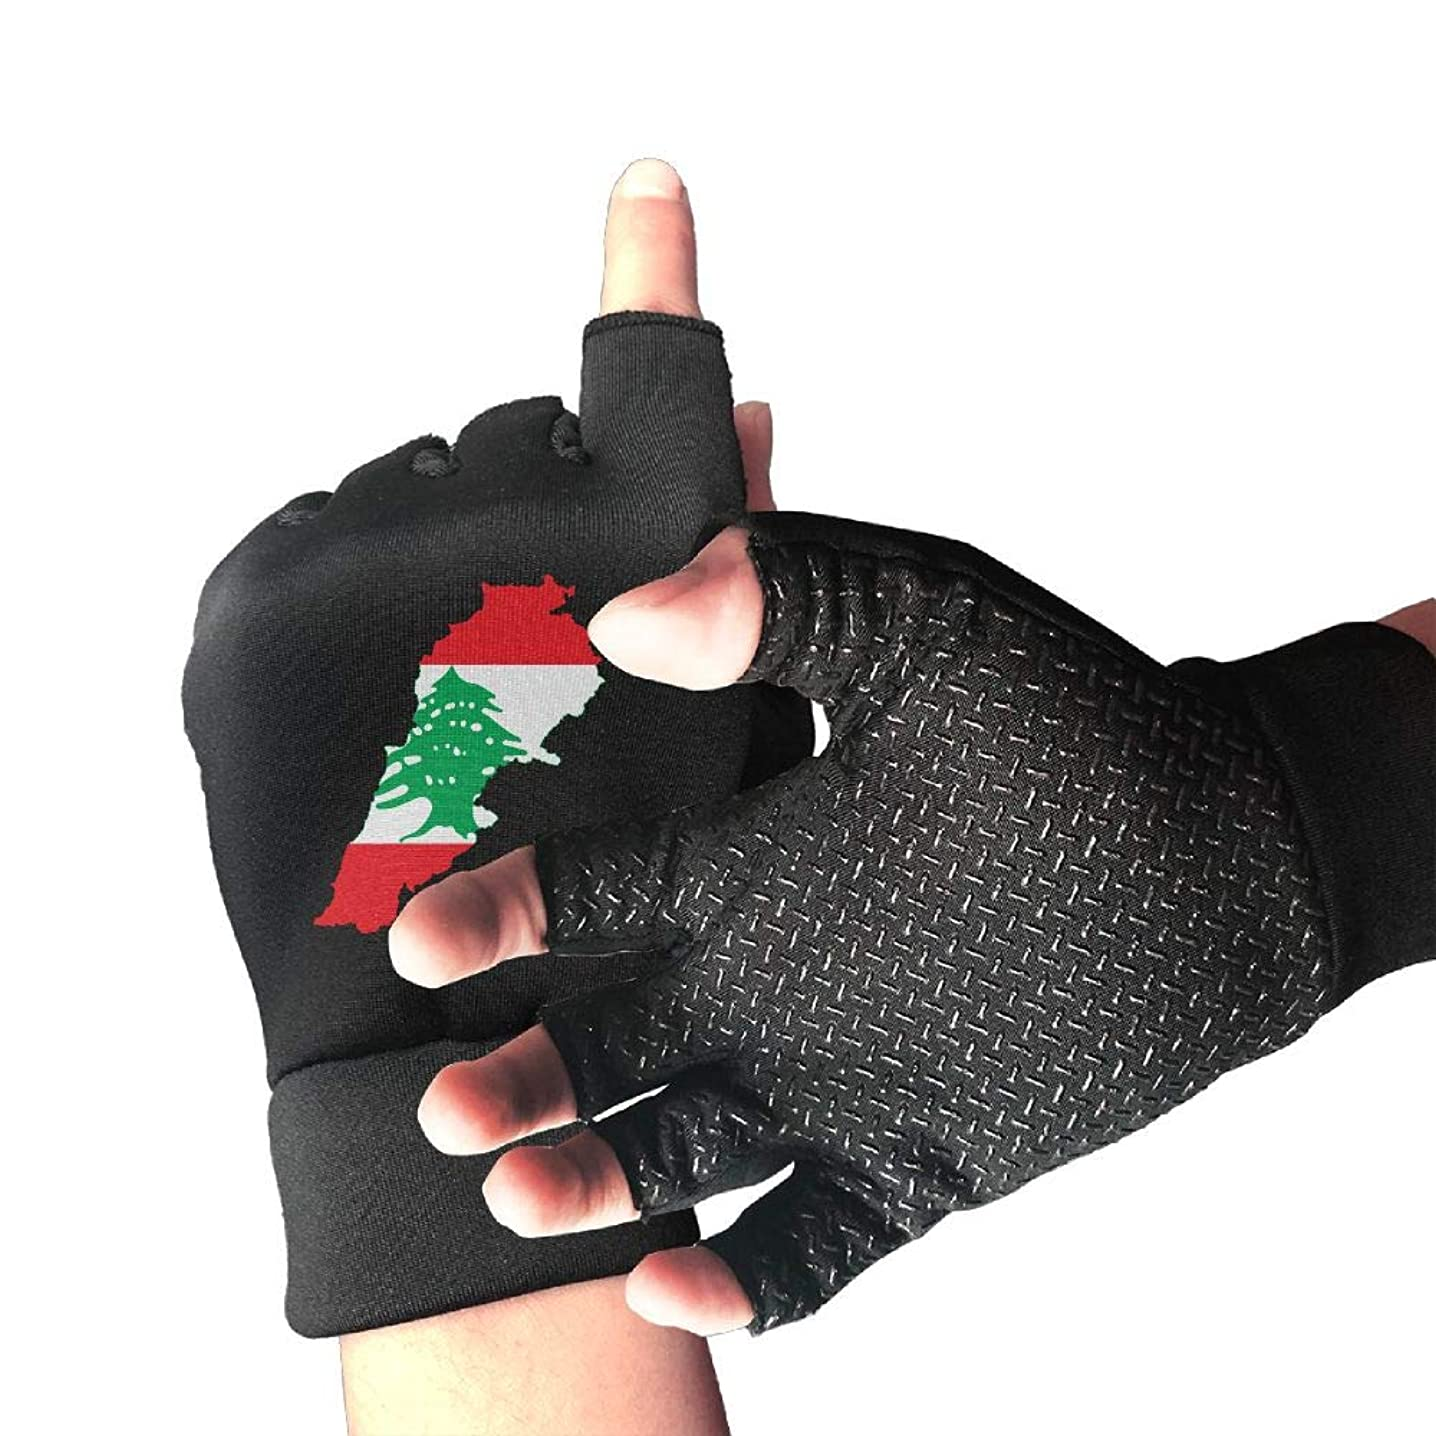 Hunting Slip-Proof Flag Map of Lebanon 1/2 Finger Short Gloves Outdoor Sports Working Gloves